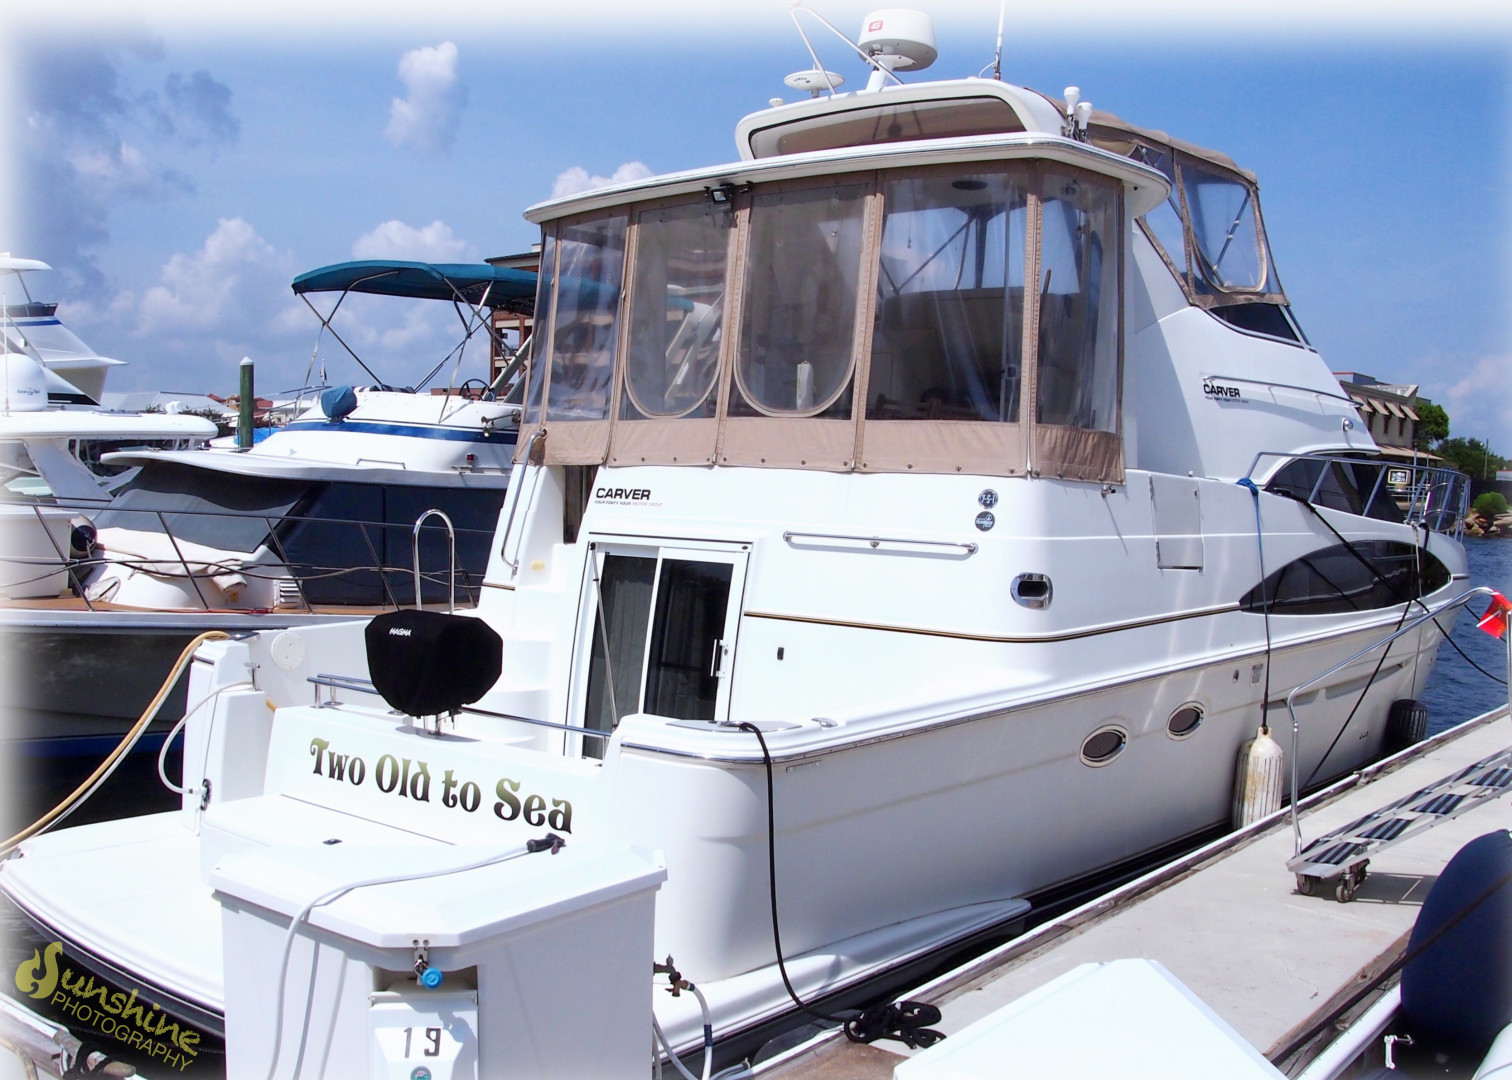 2004 Carver 44 Cockpit Motor Yacht Yacht For Sale | Too Old to Sea | SI  Yachts